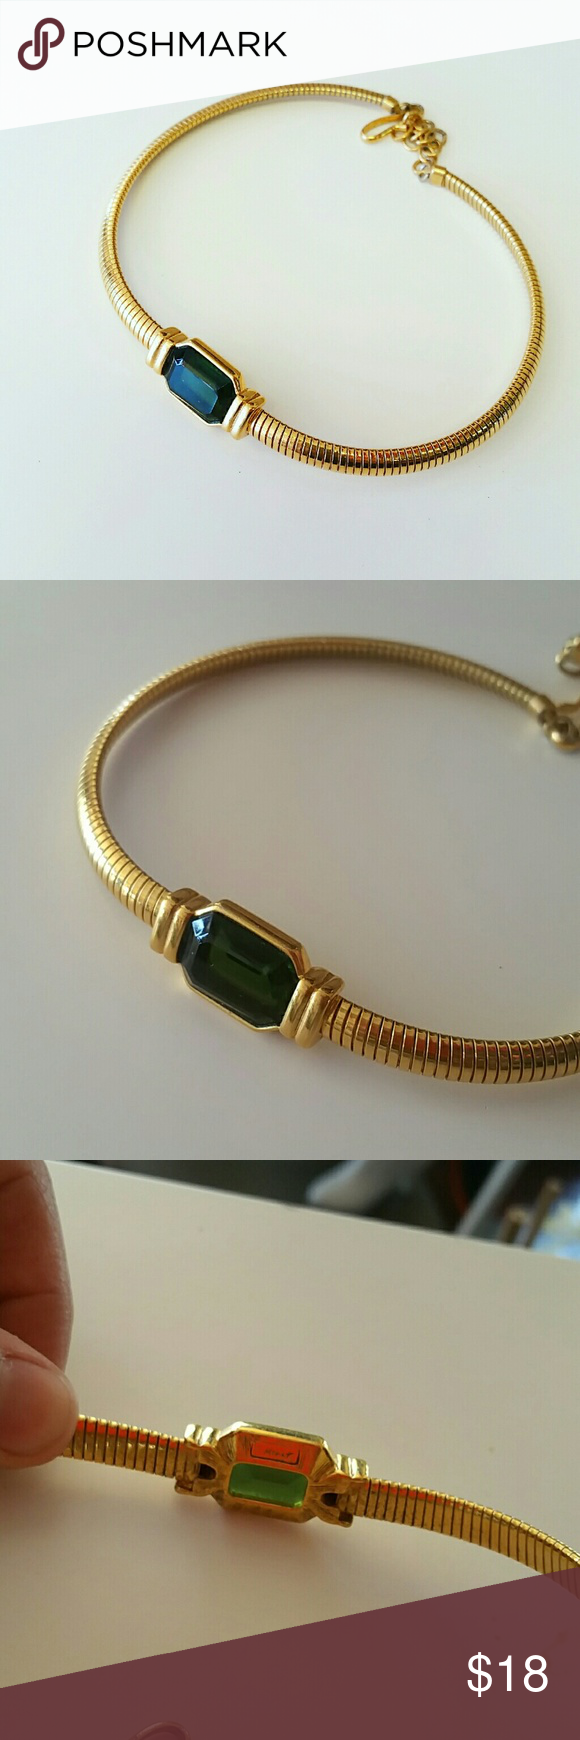 Vintage Green stone choker necklace Green stone choker necklace gold tone flower  Length 15 inch  Length 1 inch No trades  Vintage Vintage  Jewelry Necklaces